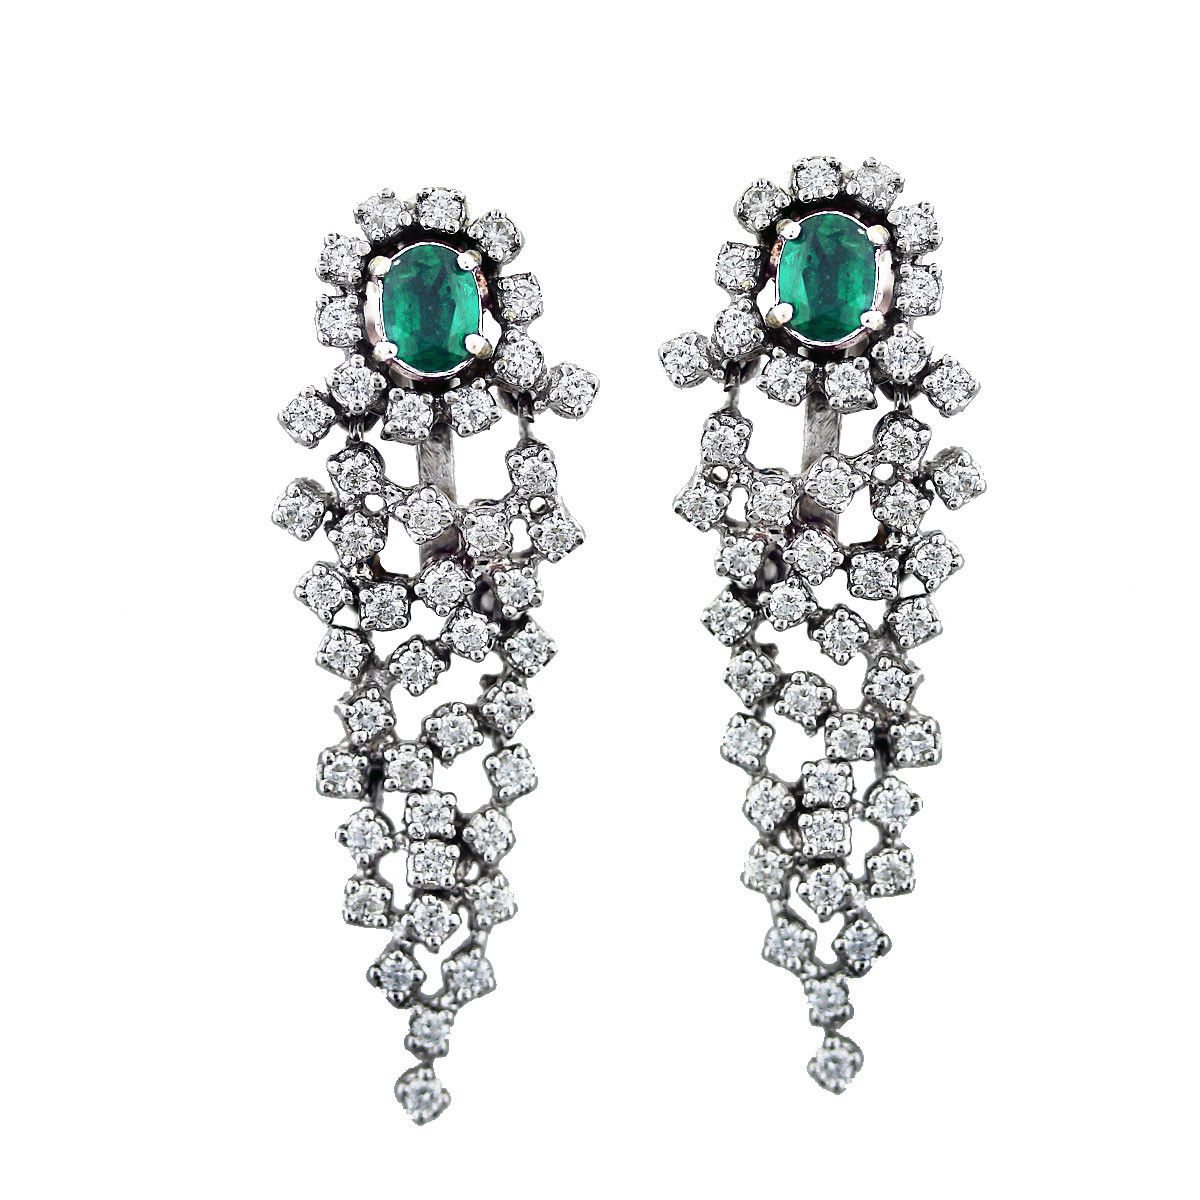 Emerald Earrings 1.25 Ct Diamond 2.00 Ct Gemstone Natural Certified Solid Gold